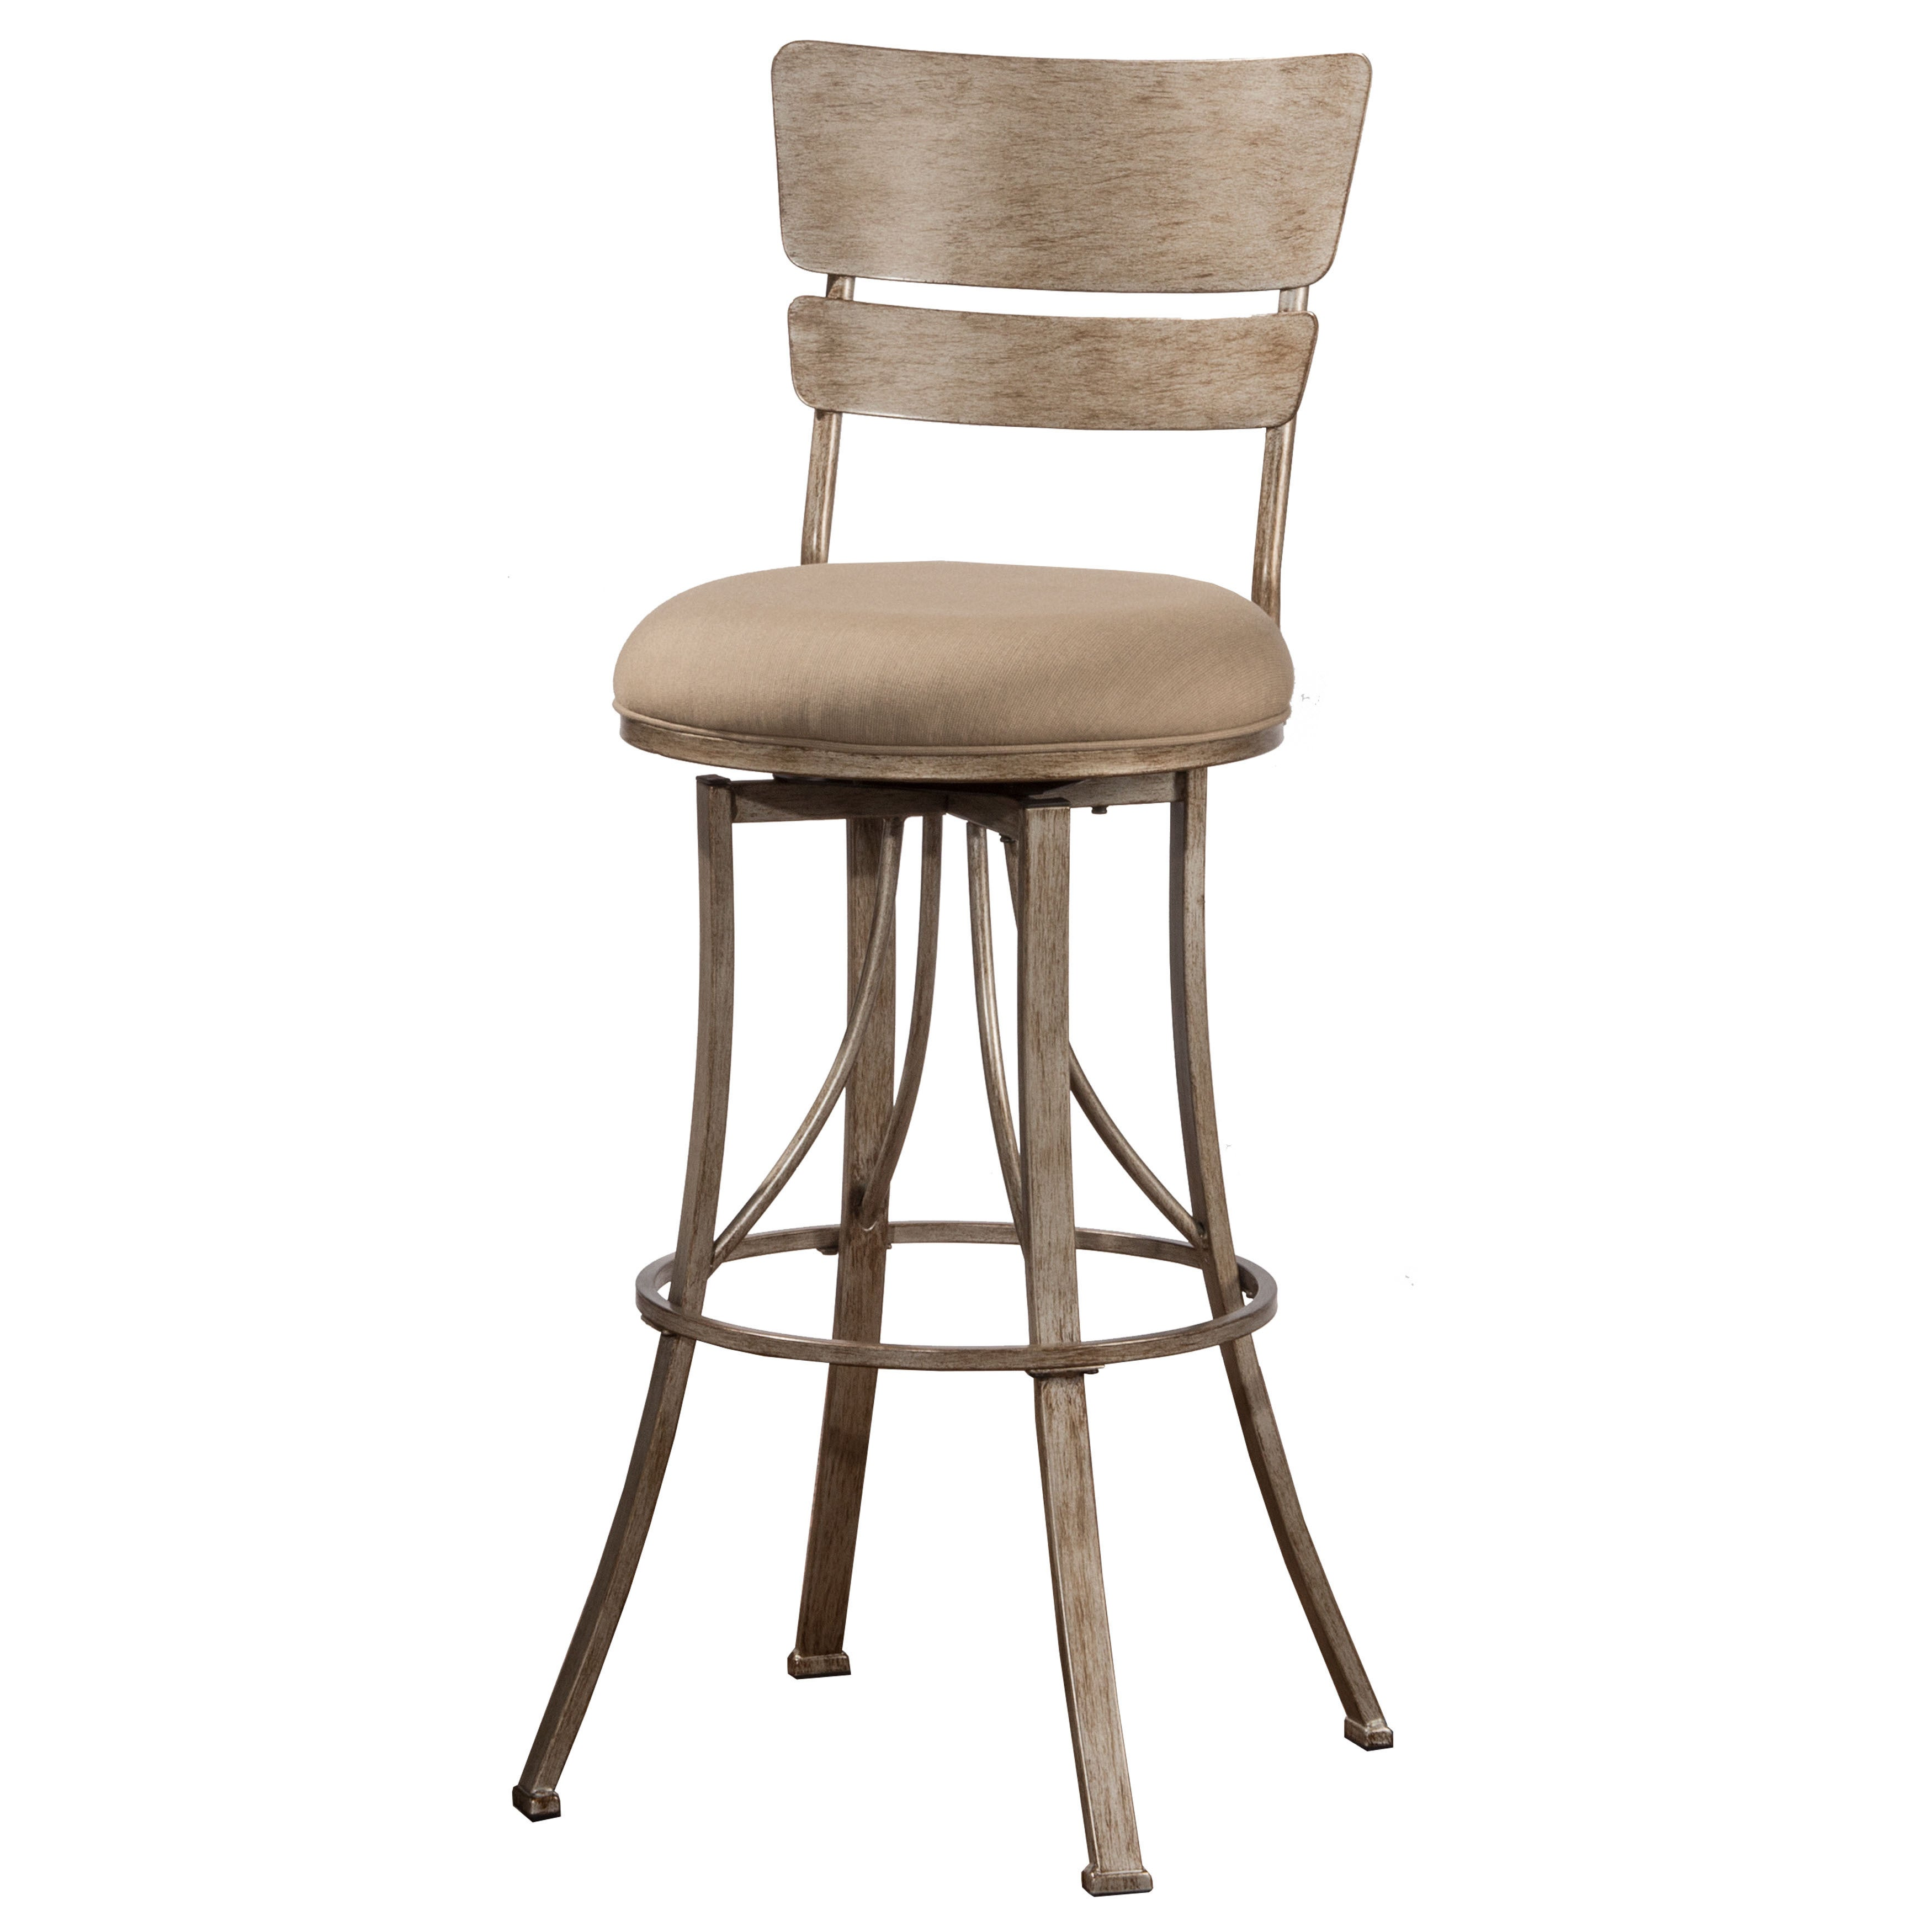 Hilale Furniture Wakefield Champagne Indoor Outdoor Swivel Counter Stool Free Shipping Today 15269102